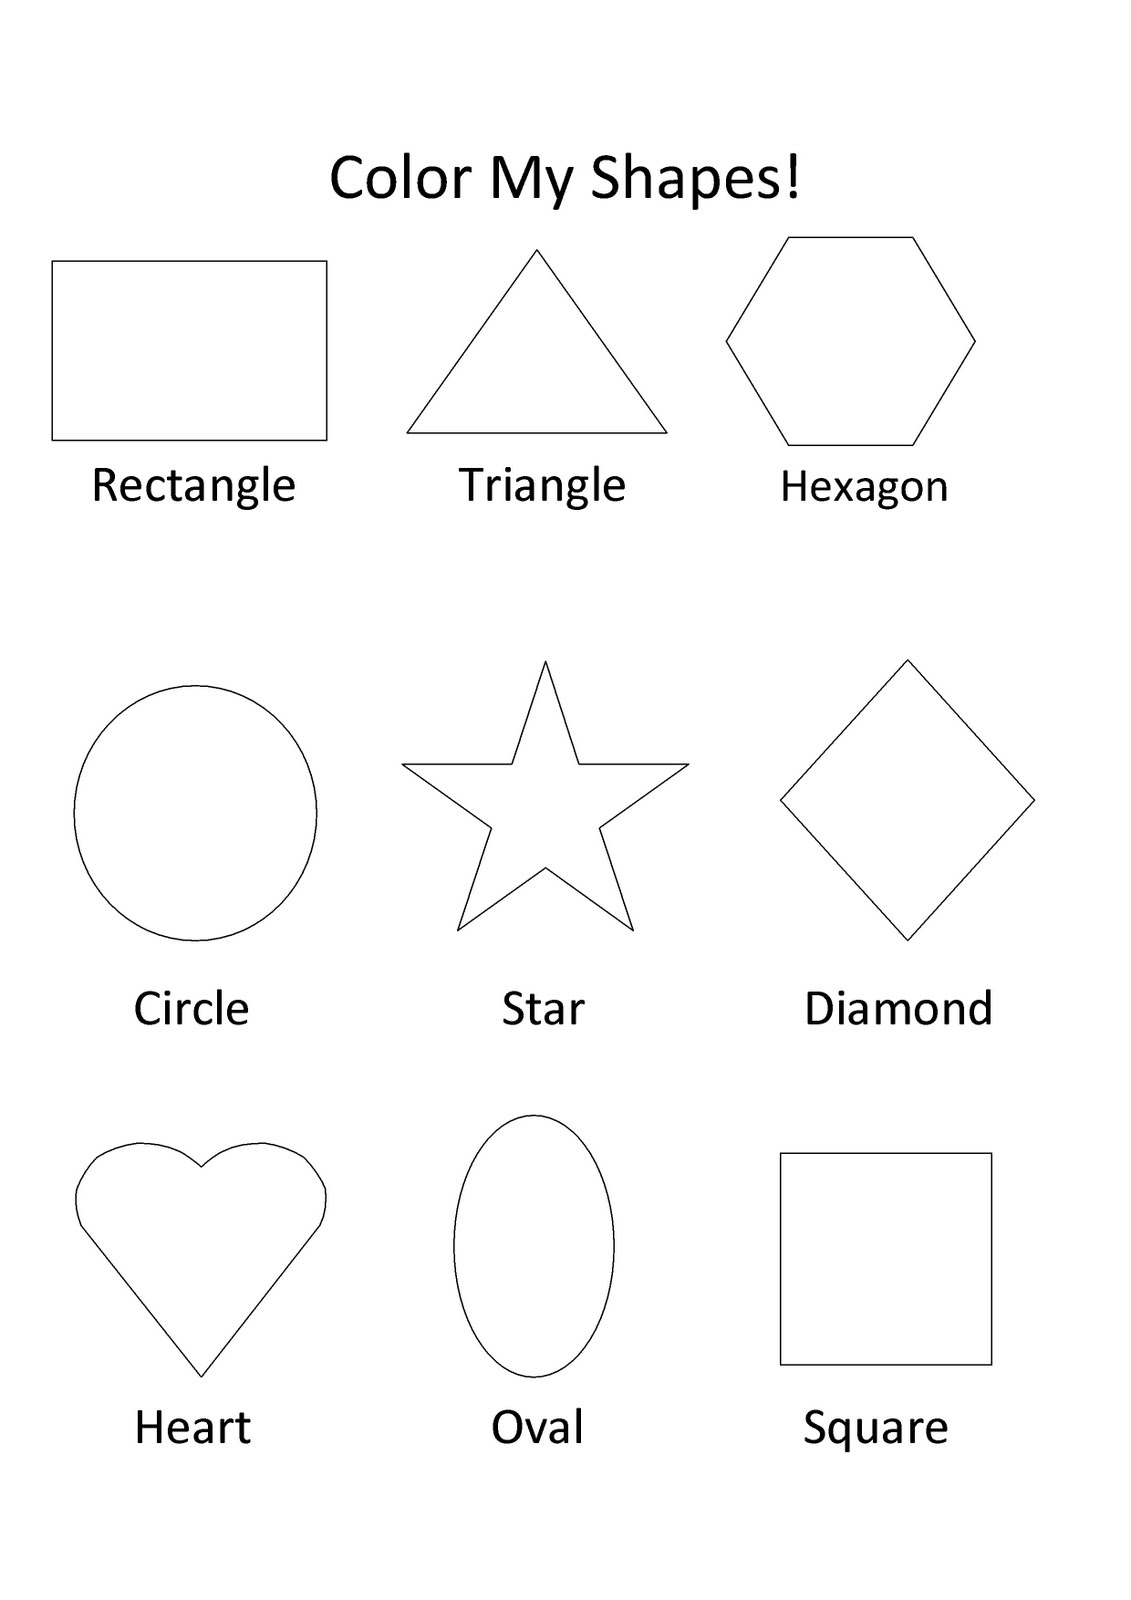 free printable shapes coloring pages for kids. Black Bedroom Furniture Sets. Home Design Ideas